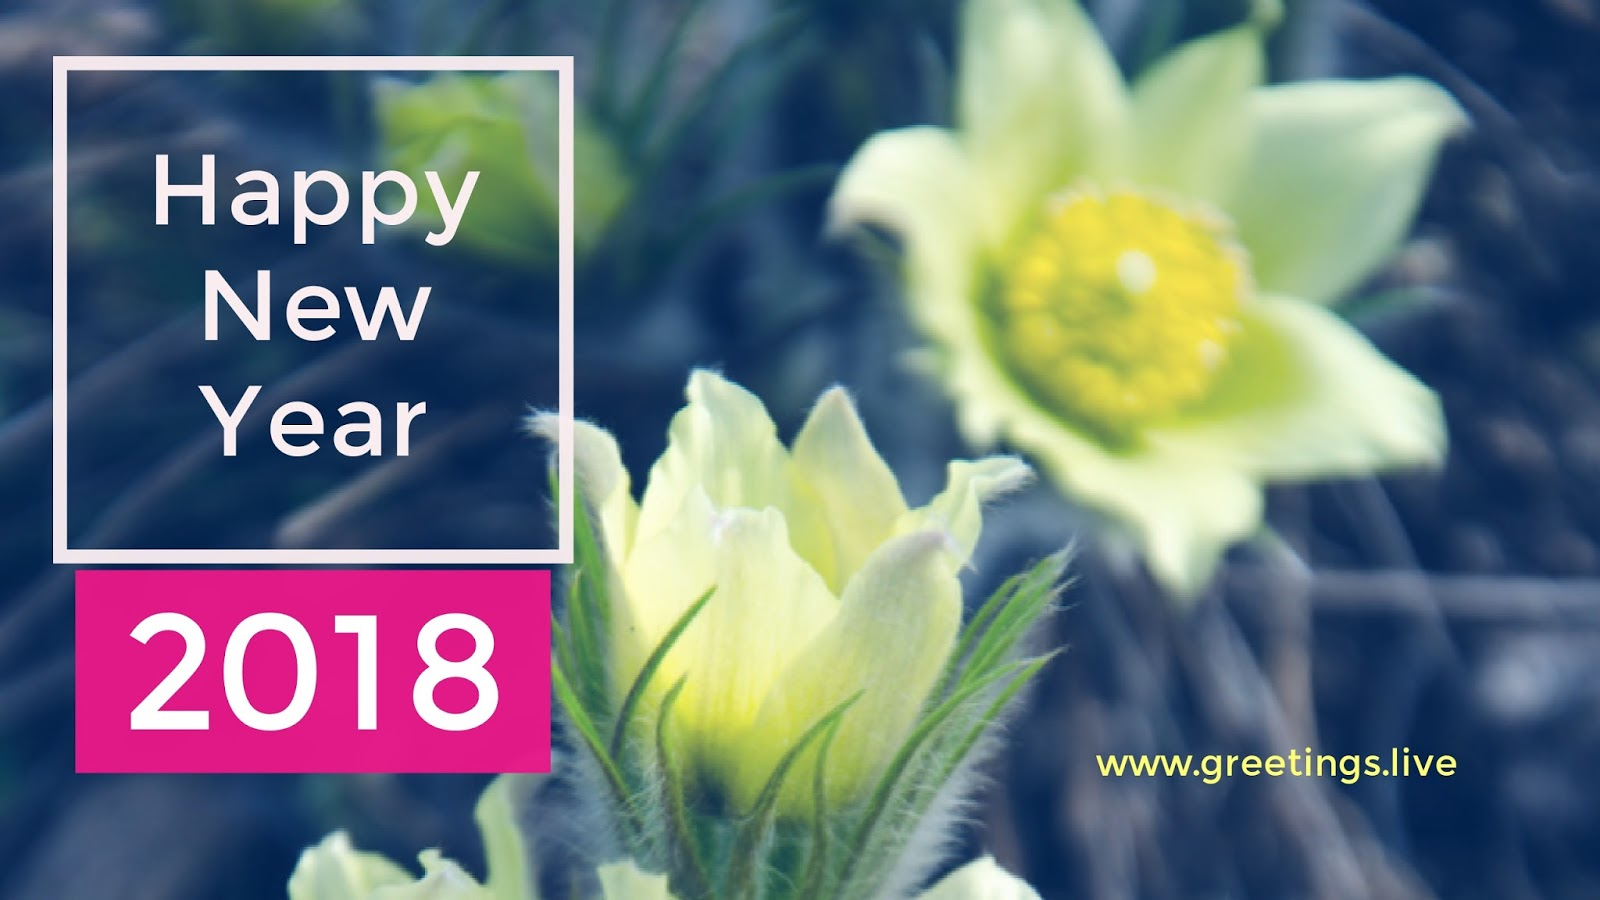 2018 New Year Wishes Greetings Top Greetings For Happy New Year 2018